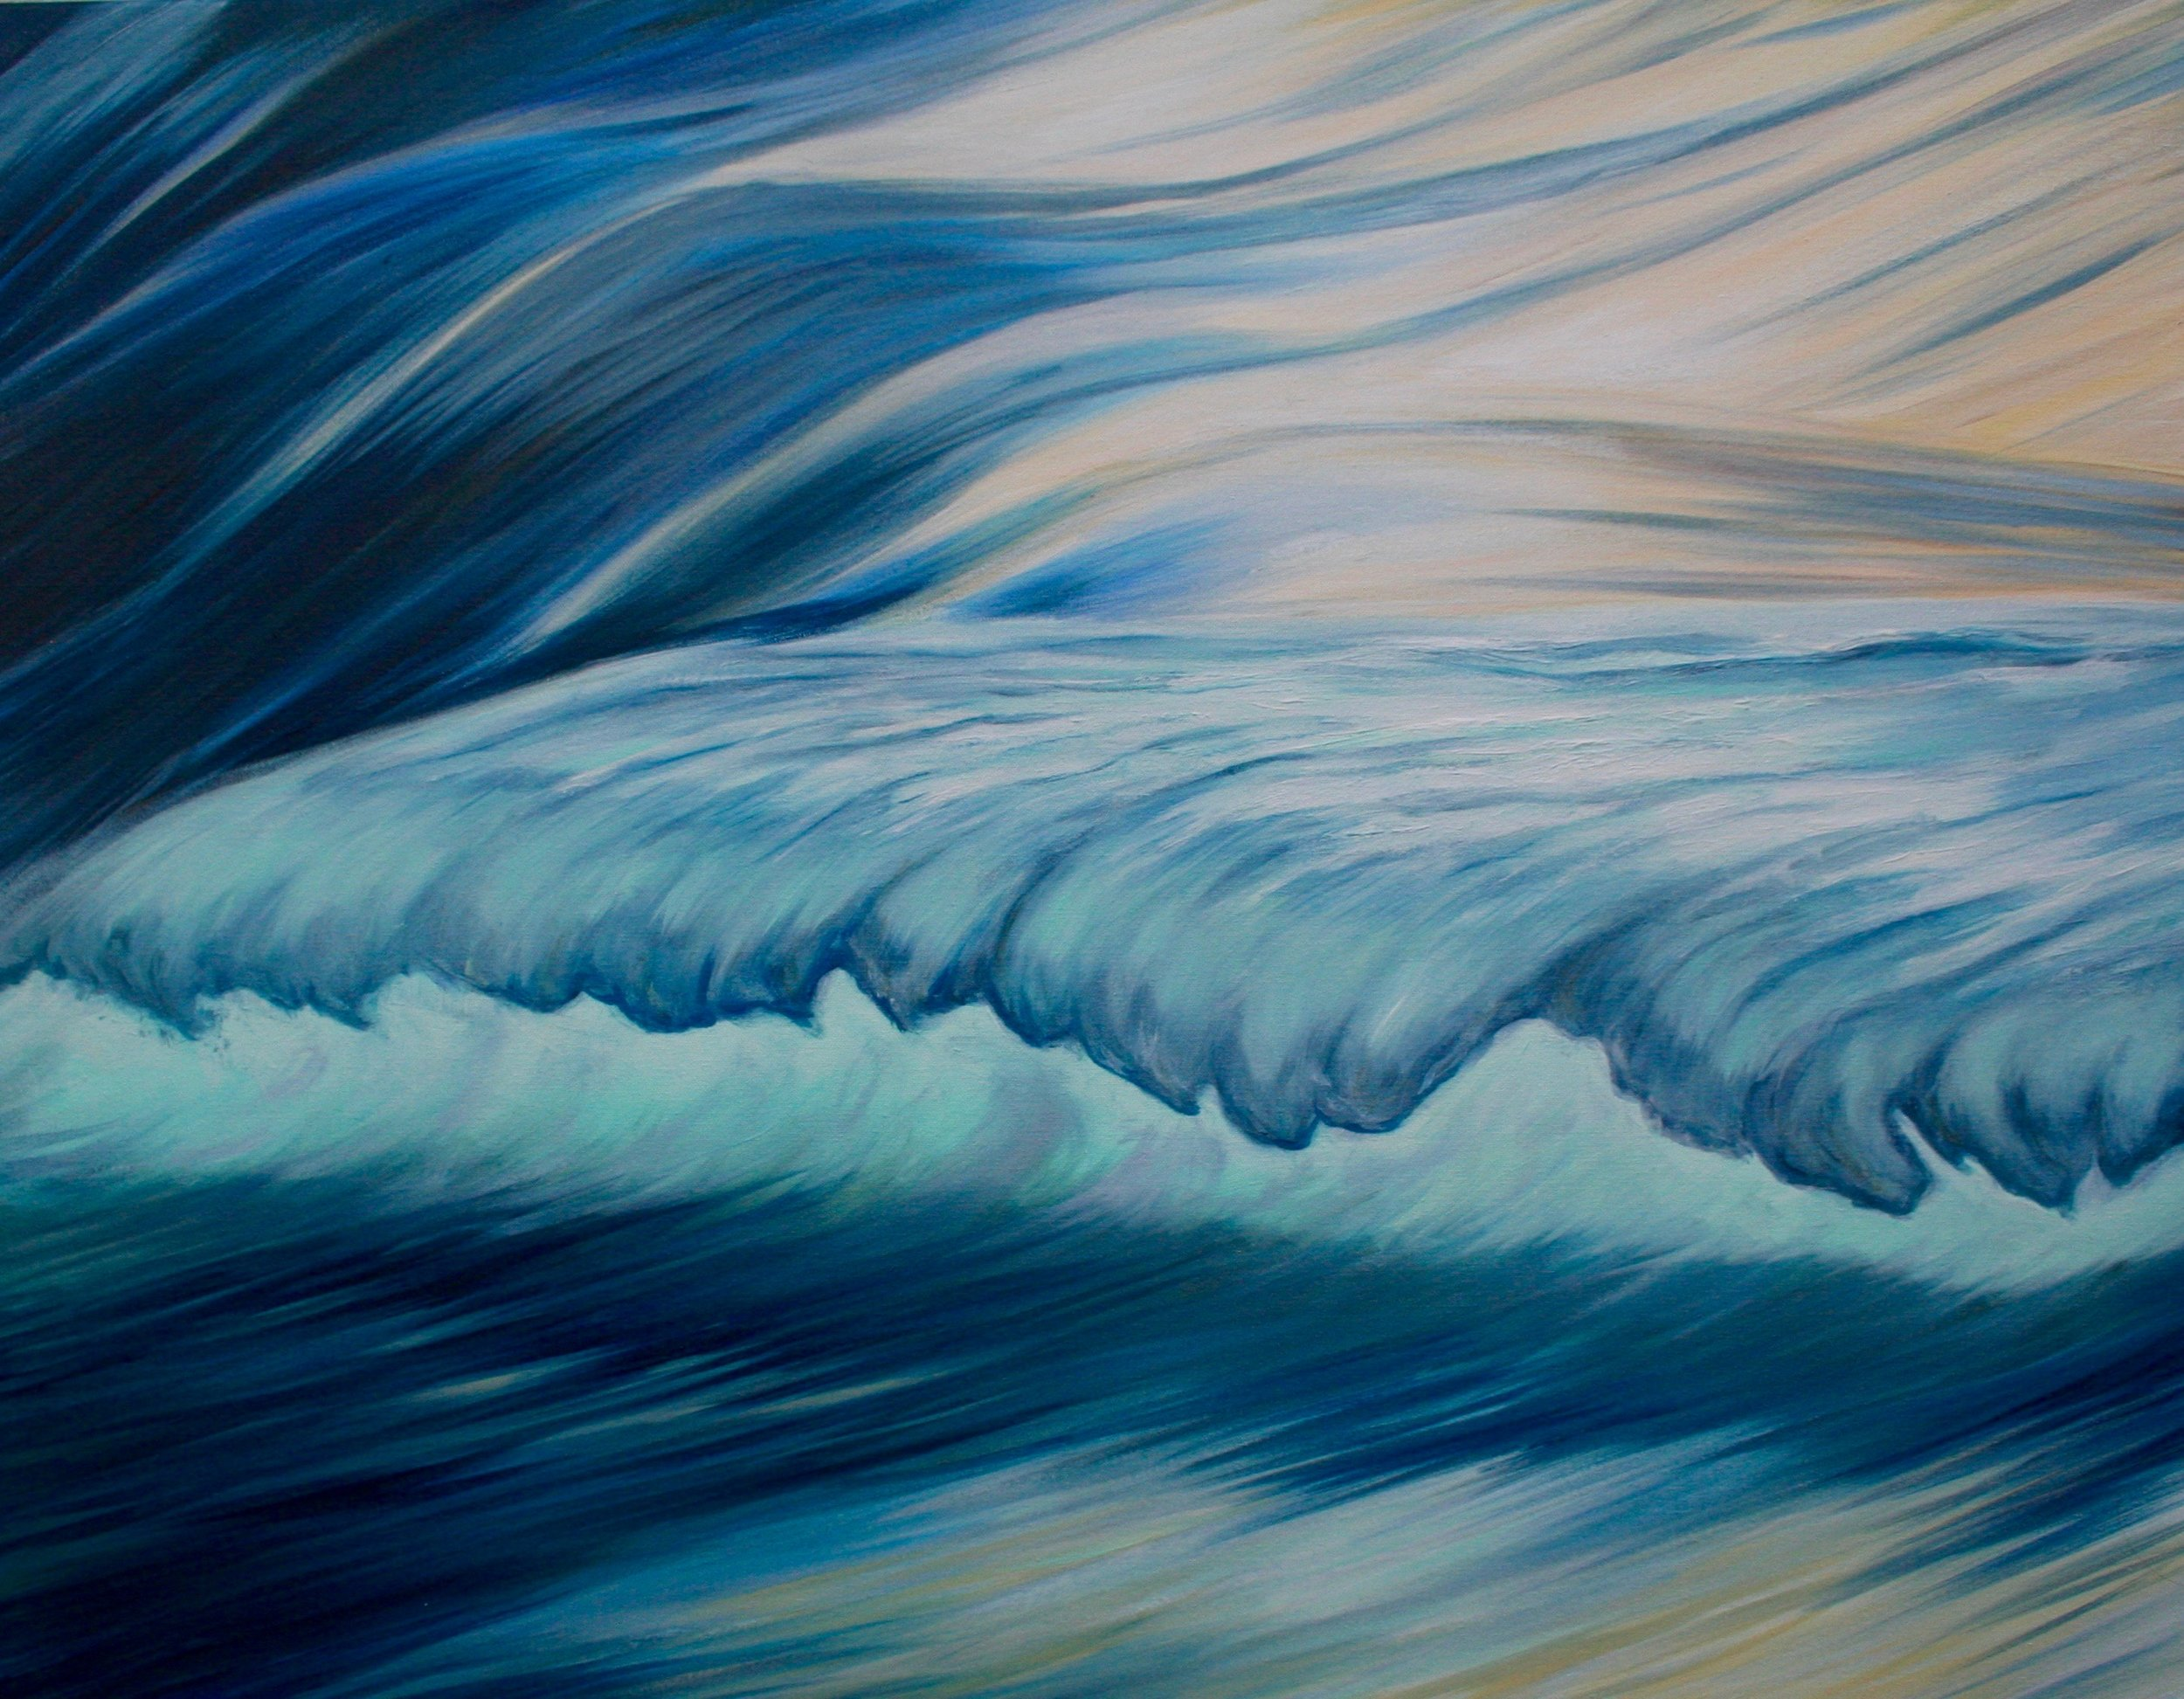 Into the blue ocean II by Catherine Kennedy @ Multimedia Art show.jpg